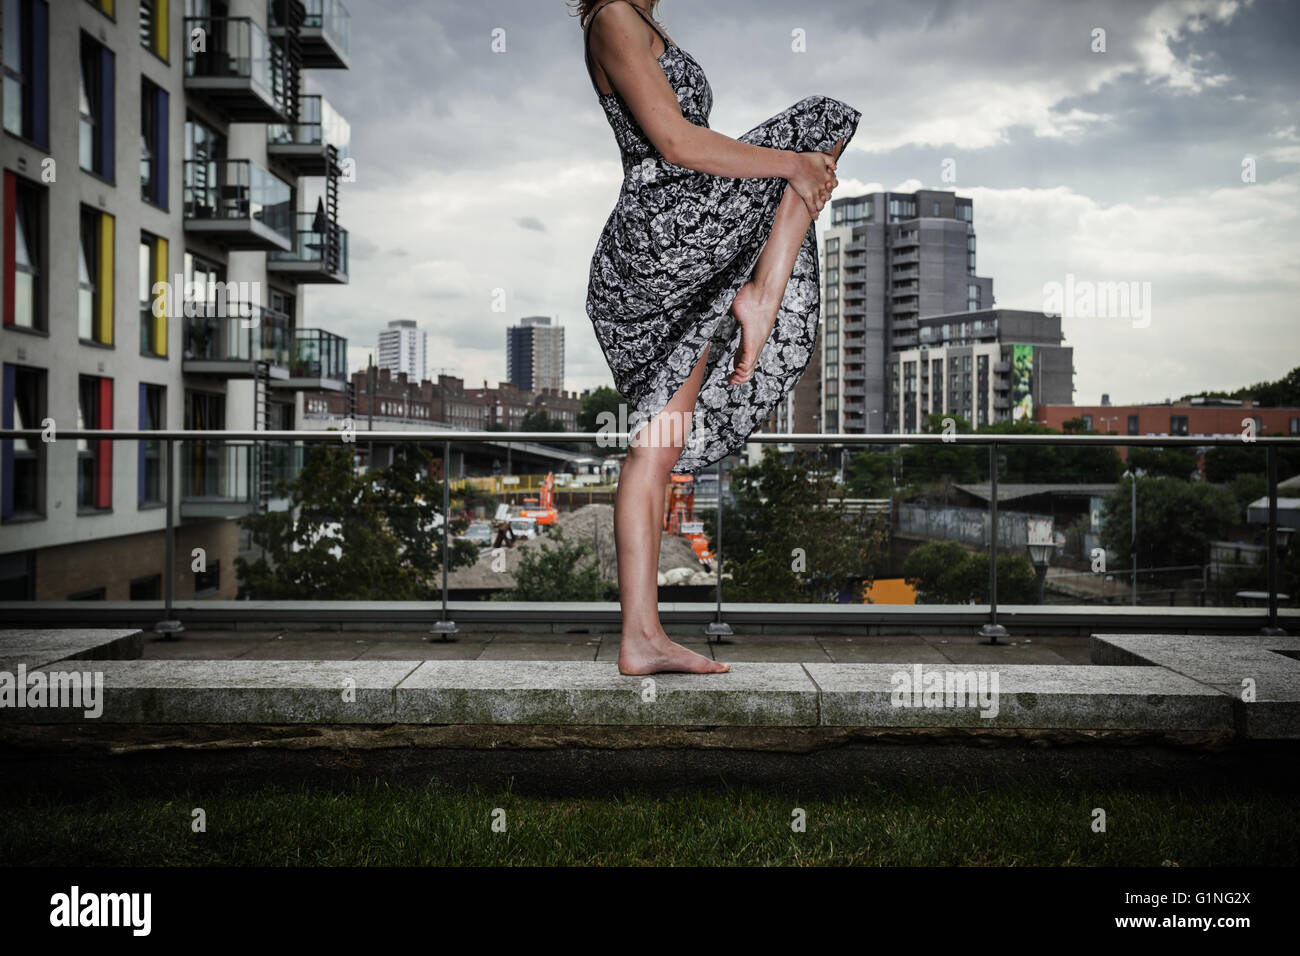 A young woman wearing a dress is raising her leg as she is standing on a roof top - Stock Image